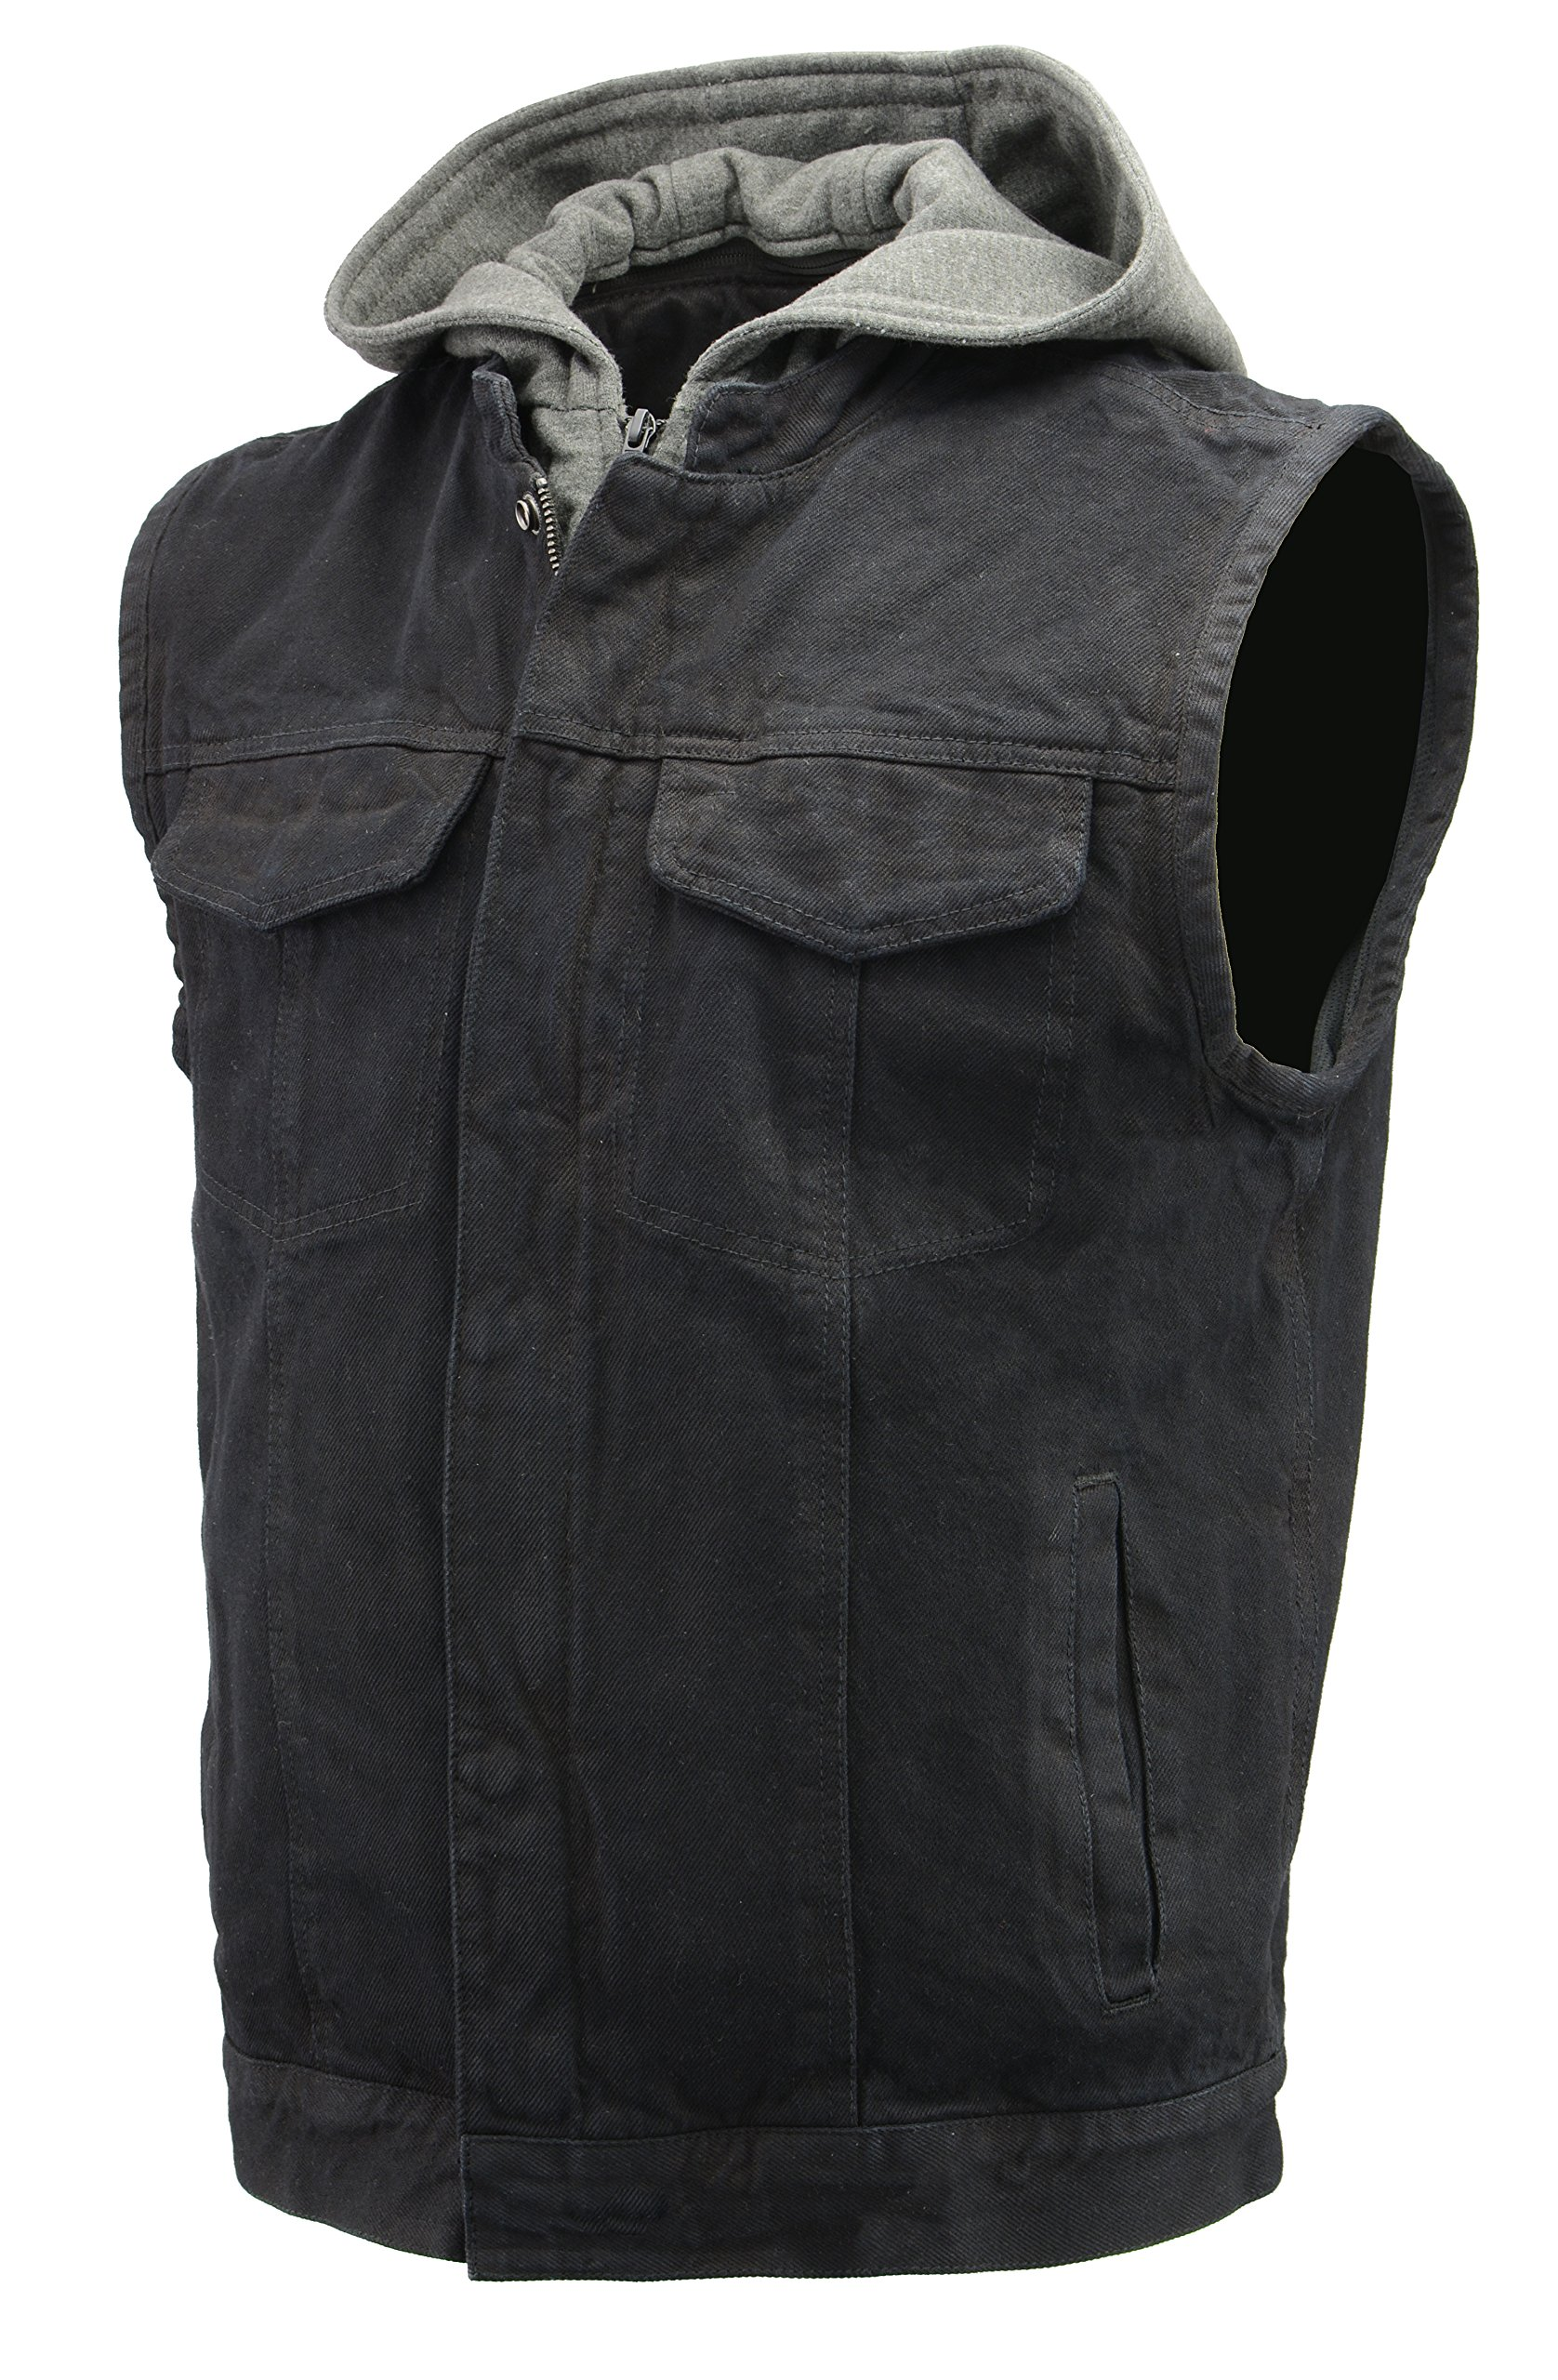 Men's Denim Club Style Vest | Removable Hoodie, Concealed Gun Pockets, Patches Friendly Single Panel Back | Rustic and Casual Black Jean Biker Vest (Black, Med) by The Bikers Zone